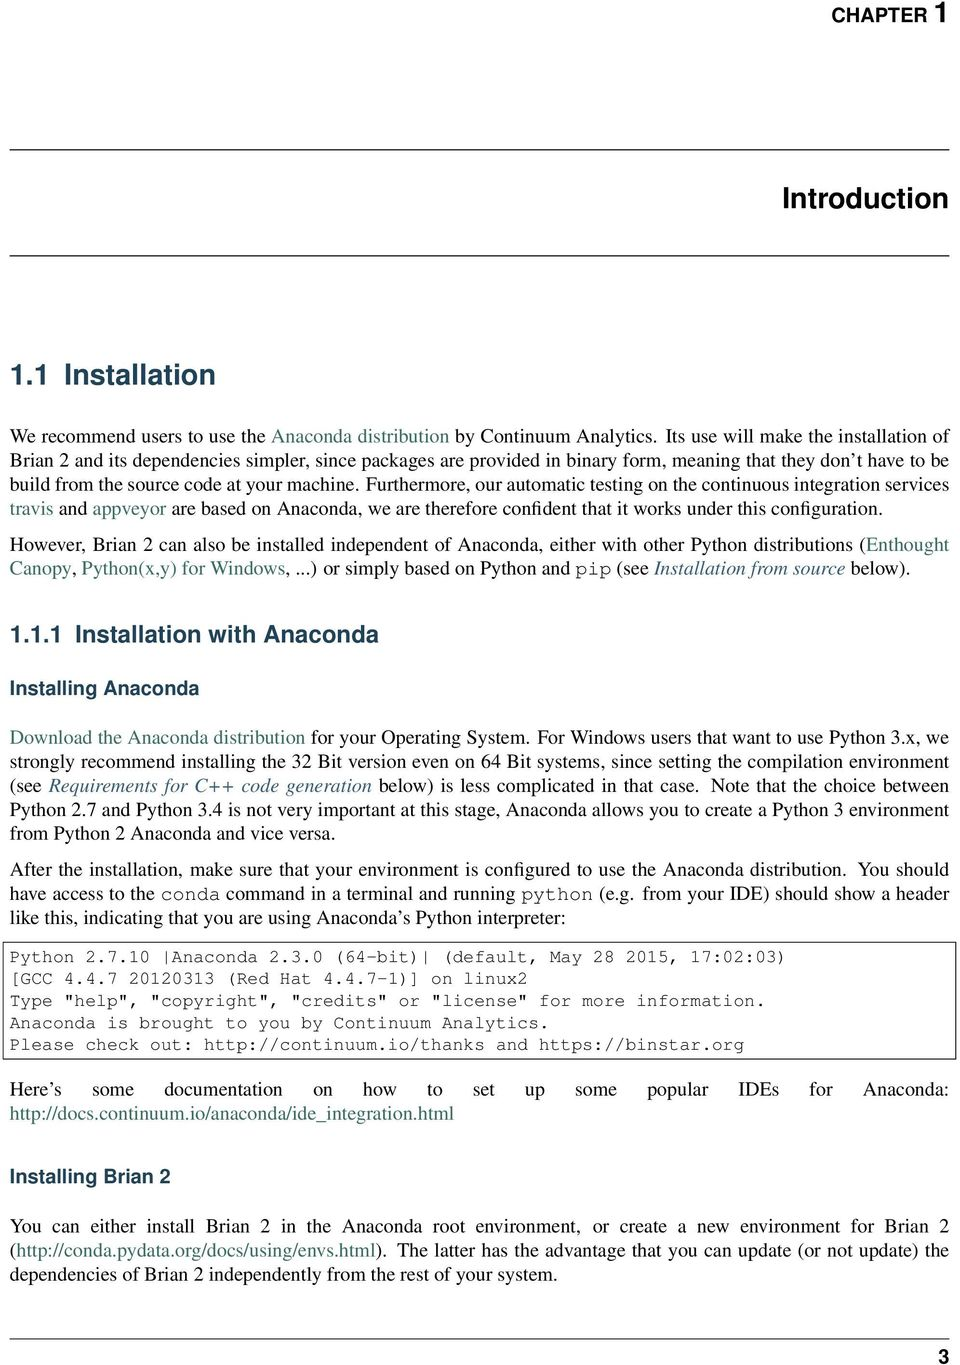 Brian 2 Documentation - PDF